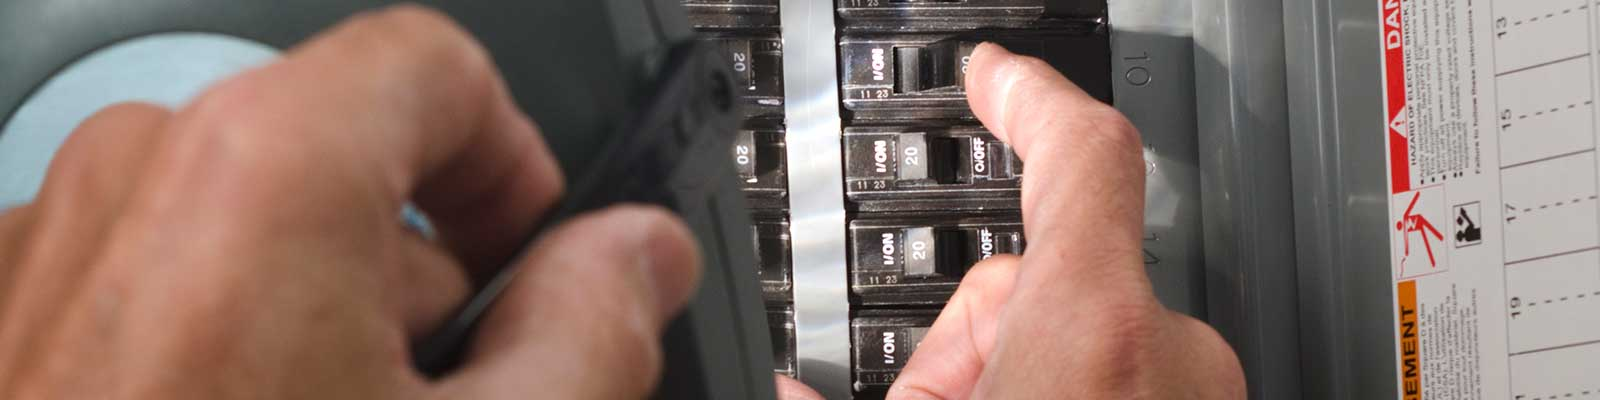 Man with Flashlight at Commercial Circuit-breaker Panel